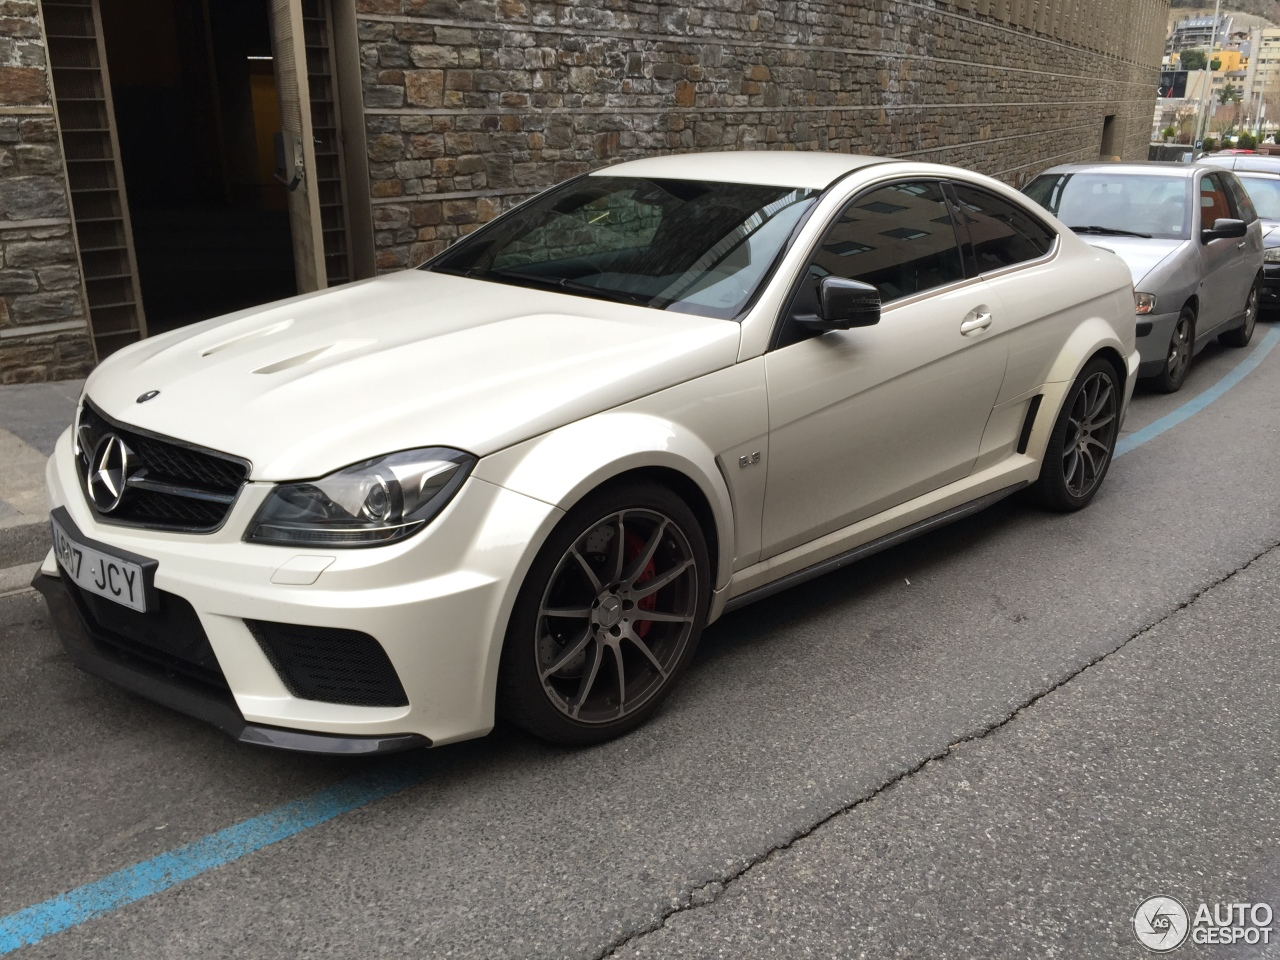 mercedes benz c 63 amg coup black series 22 april 2015 autogespot. Black Bedroom Furniture Sets. Home Design Ideas